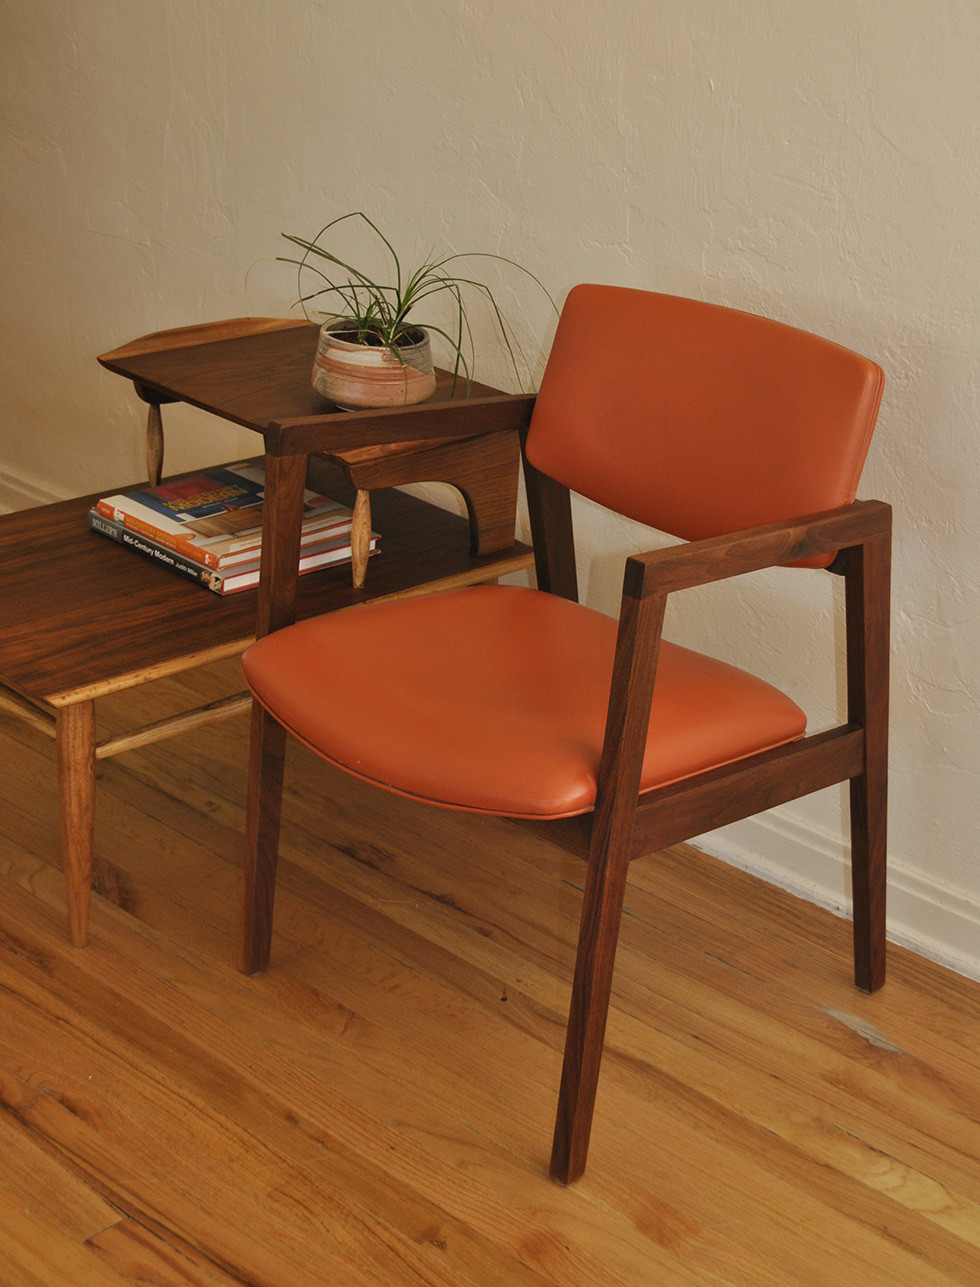 Best ideas about Mid Century Office Chair . Save or Pin Mid Century Orange and Walnut fice Desk Chair Trevi Now.